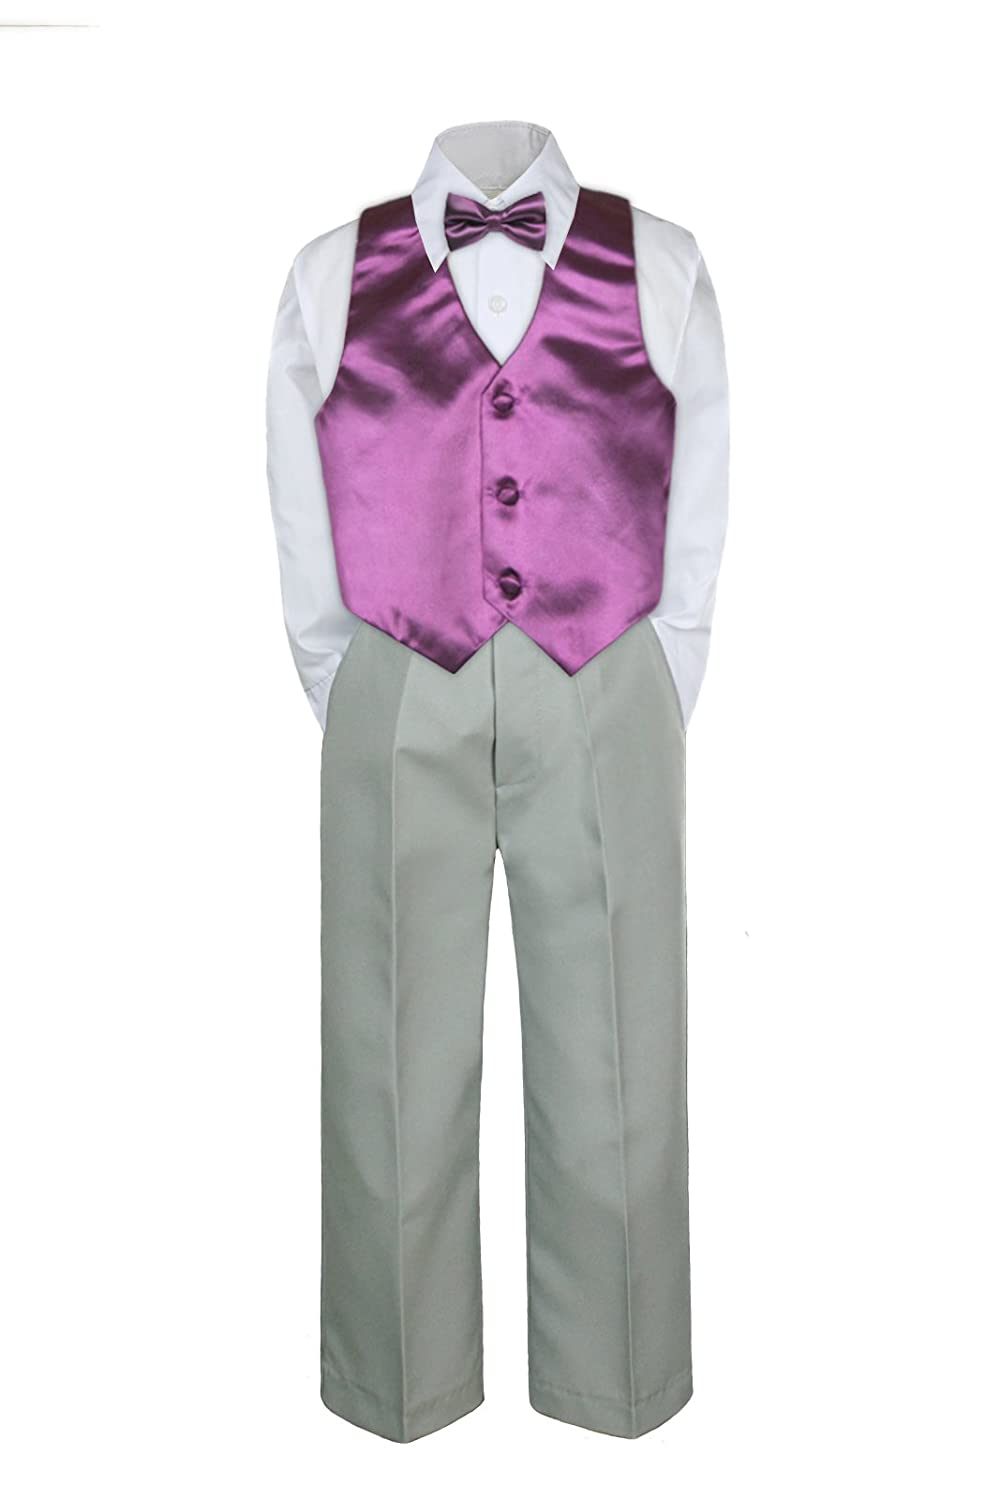 0-6 months S: 4pc Formal Baby Teen Boy Lime Green Vest Necktie Silver Pants Suit S-7